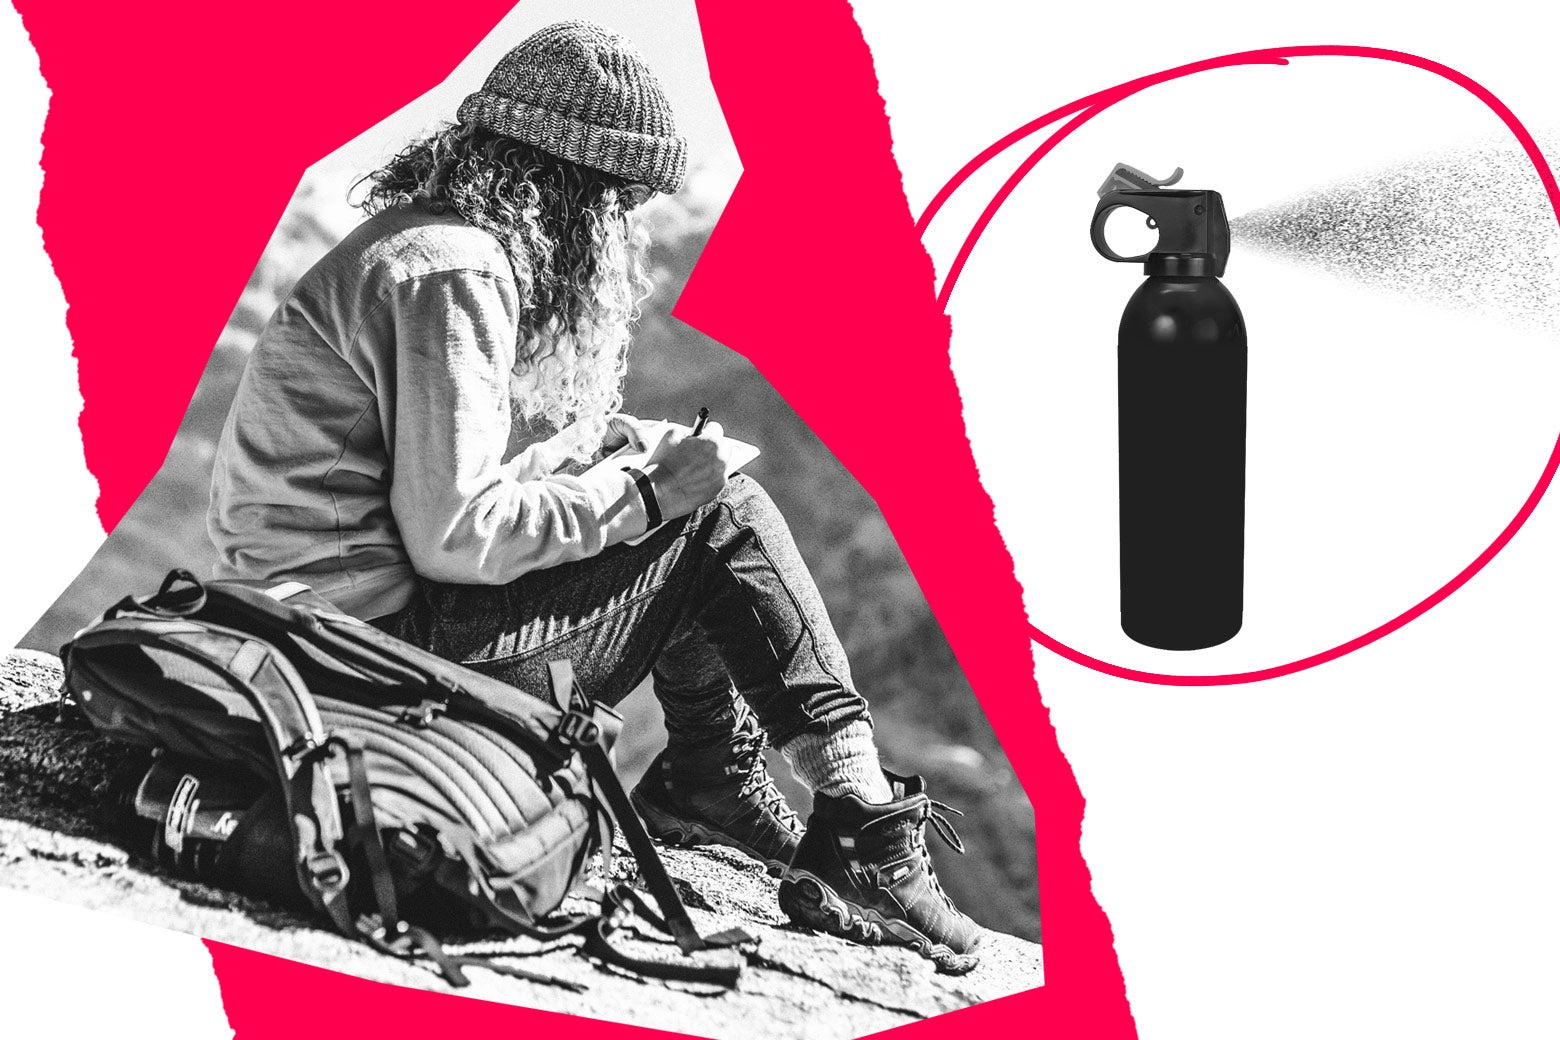 Collage of hiker and pepper spray.